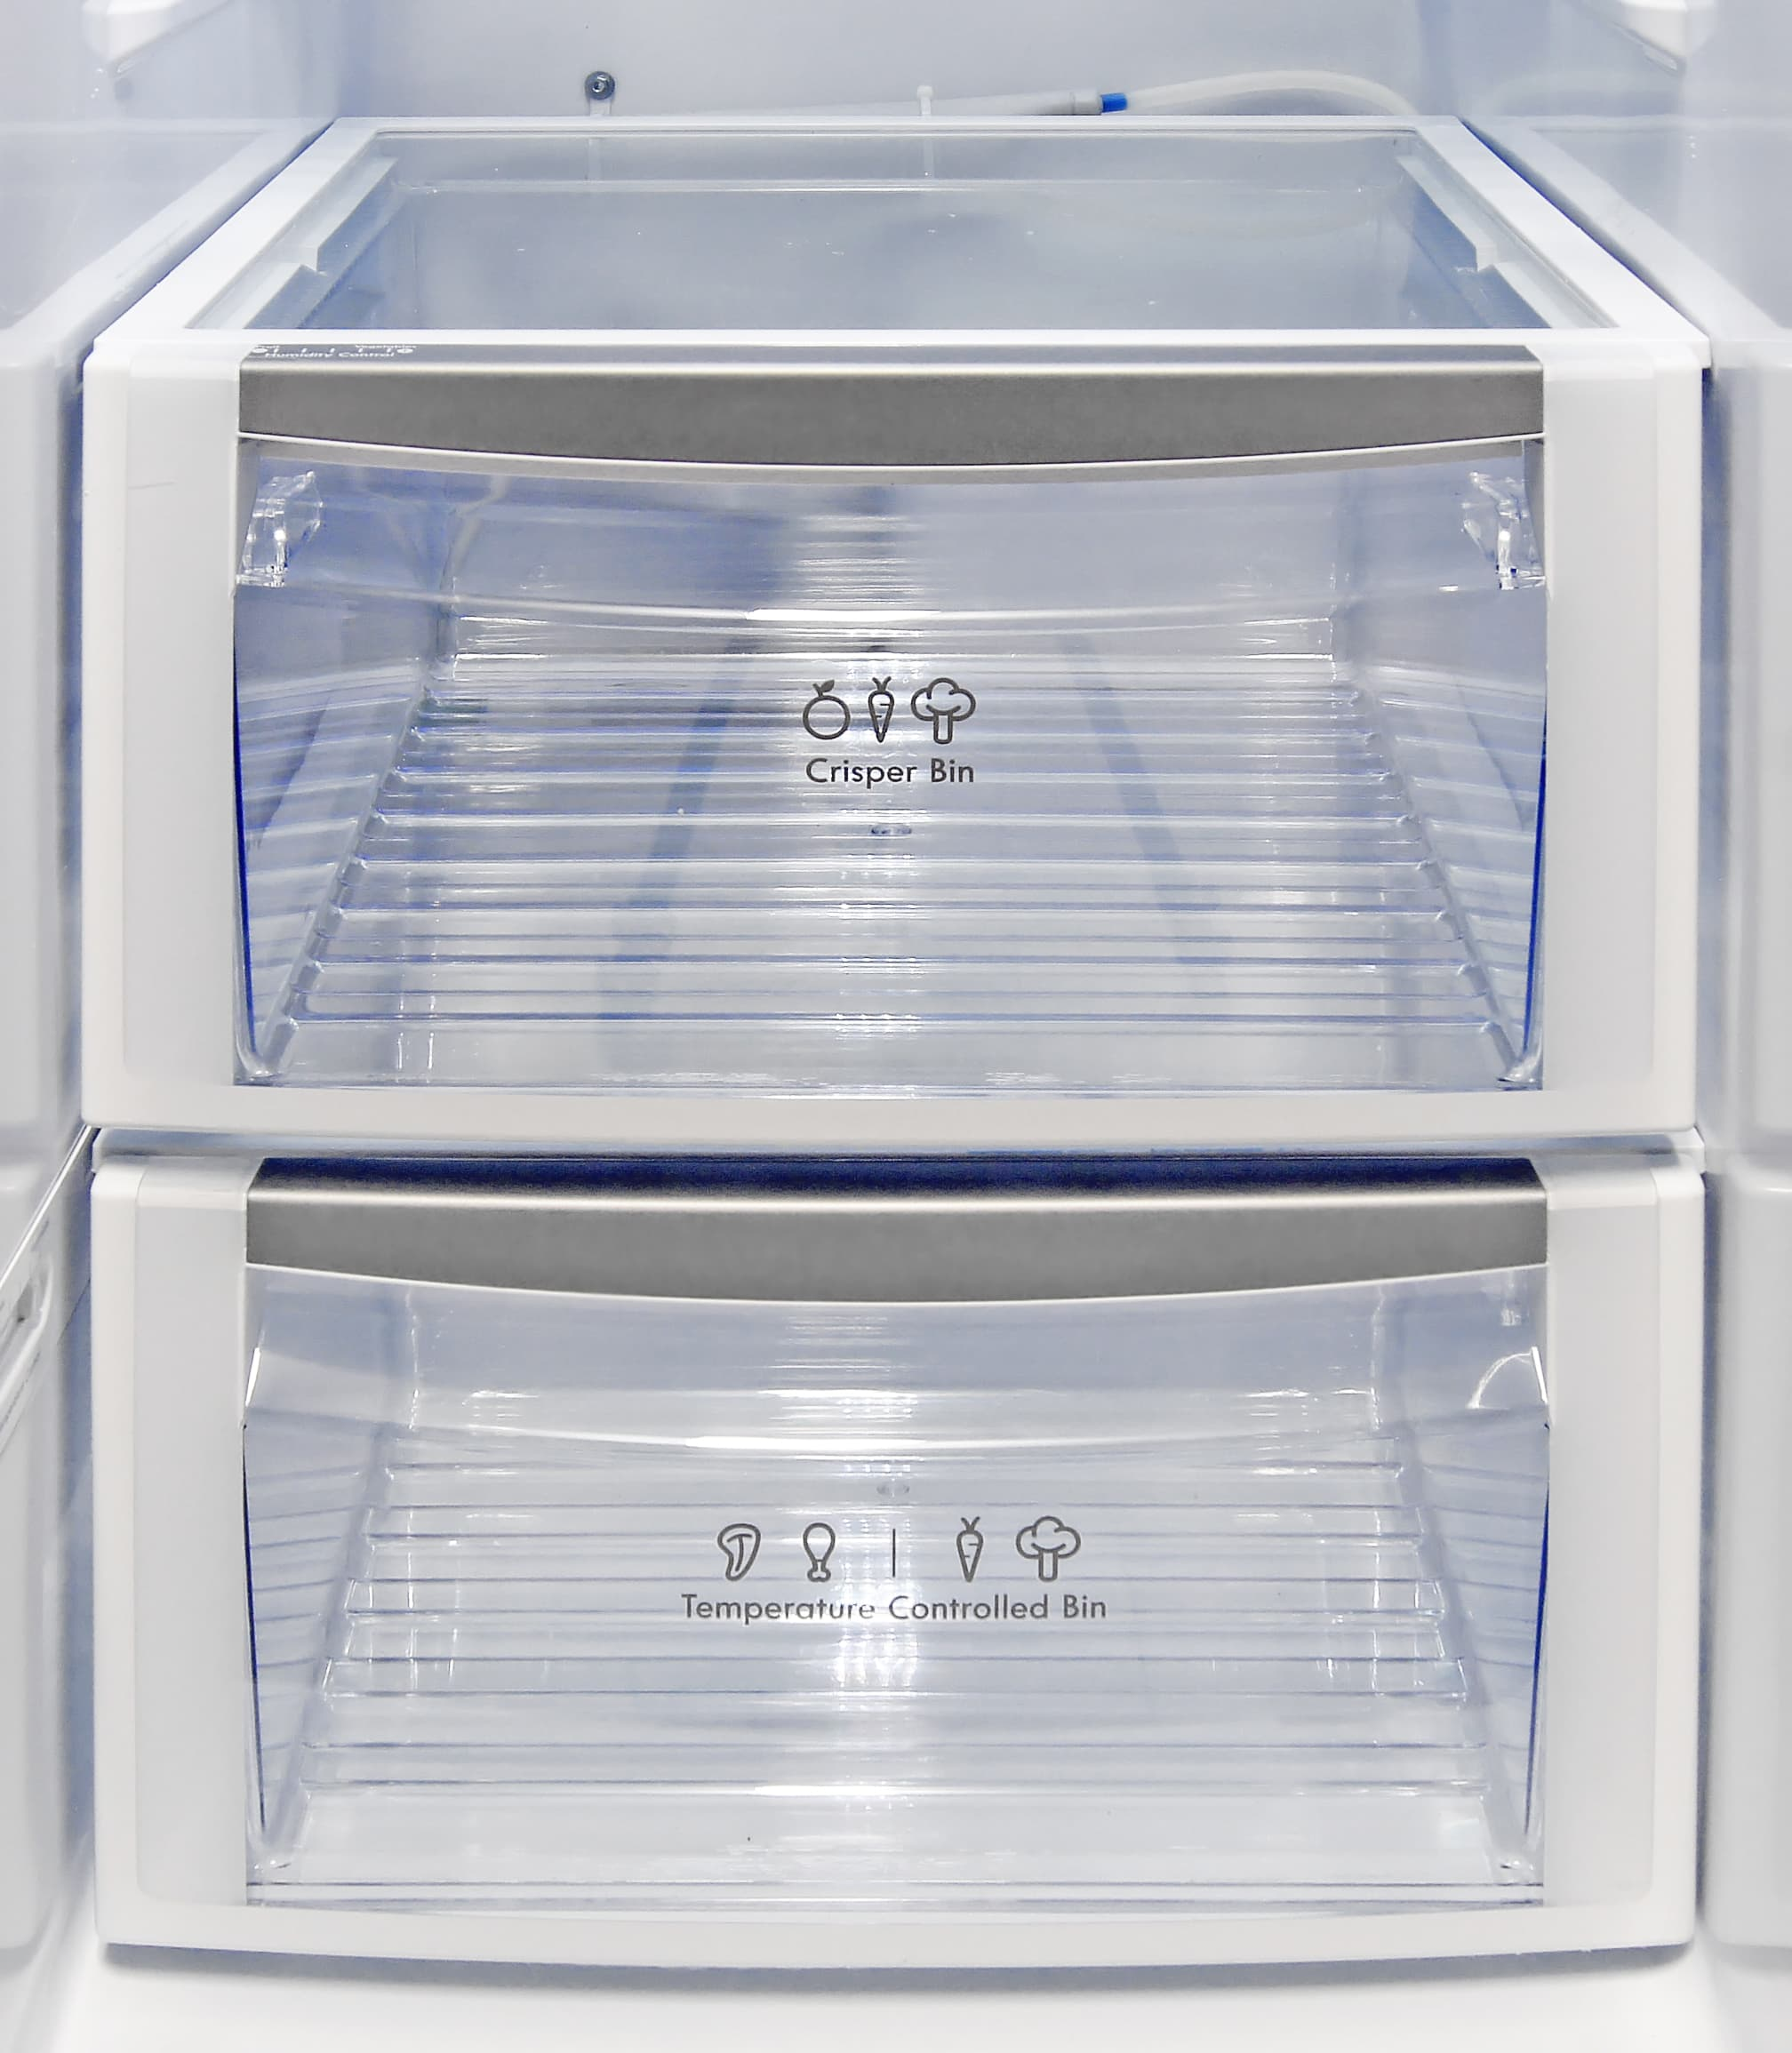 The Kenmore Elite 51162 only has one actual crisper; the lowest drawer has an adjustable temperature control instead.